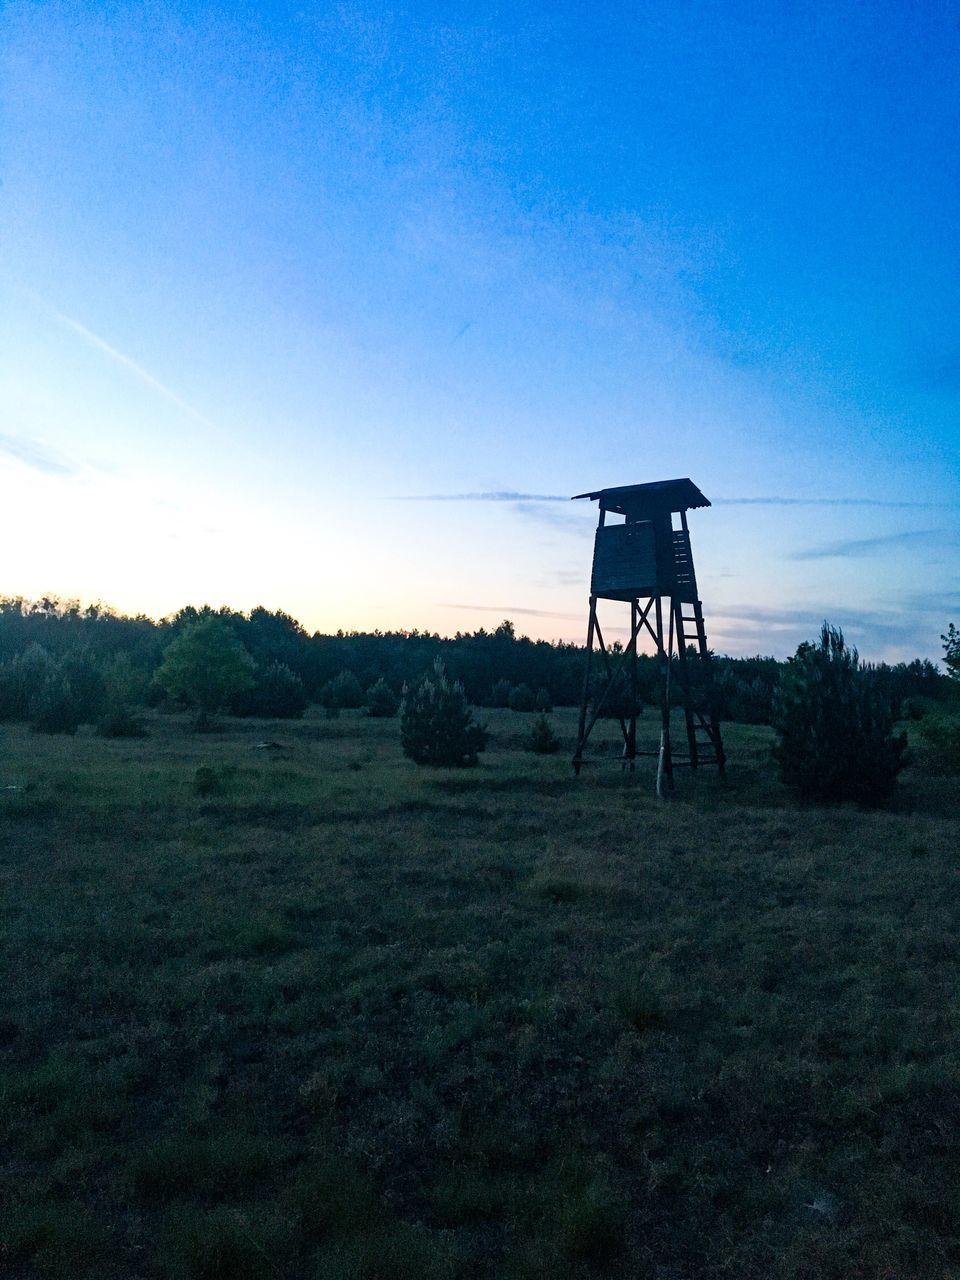 silhouette, sky, field, grass, nature, landscape, tree, sunset, lookout tower, outdoors, no people, tranquility, beauty in nature, day, scenics, water tank, built structure, clear sky, water tower - storage tank, architecture